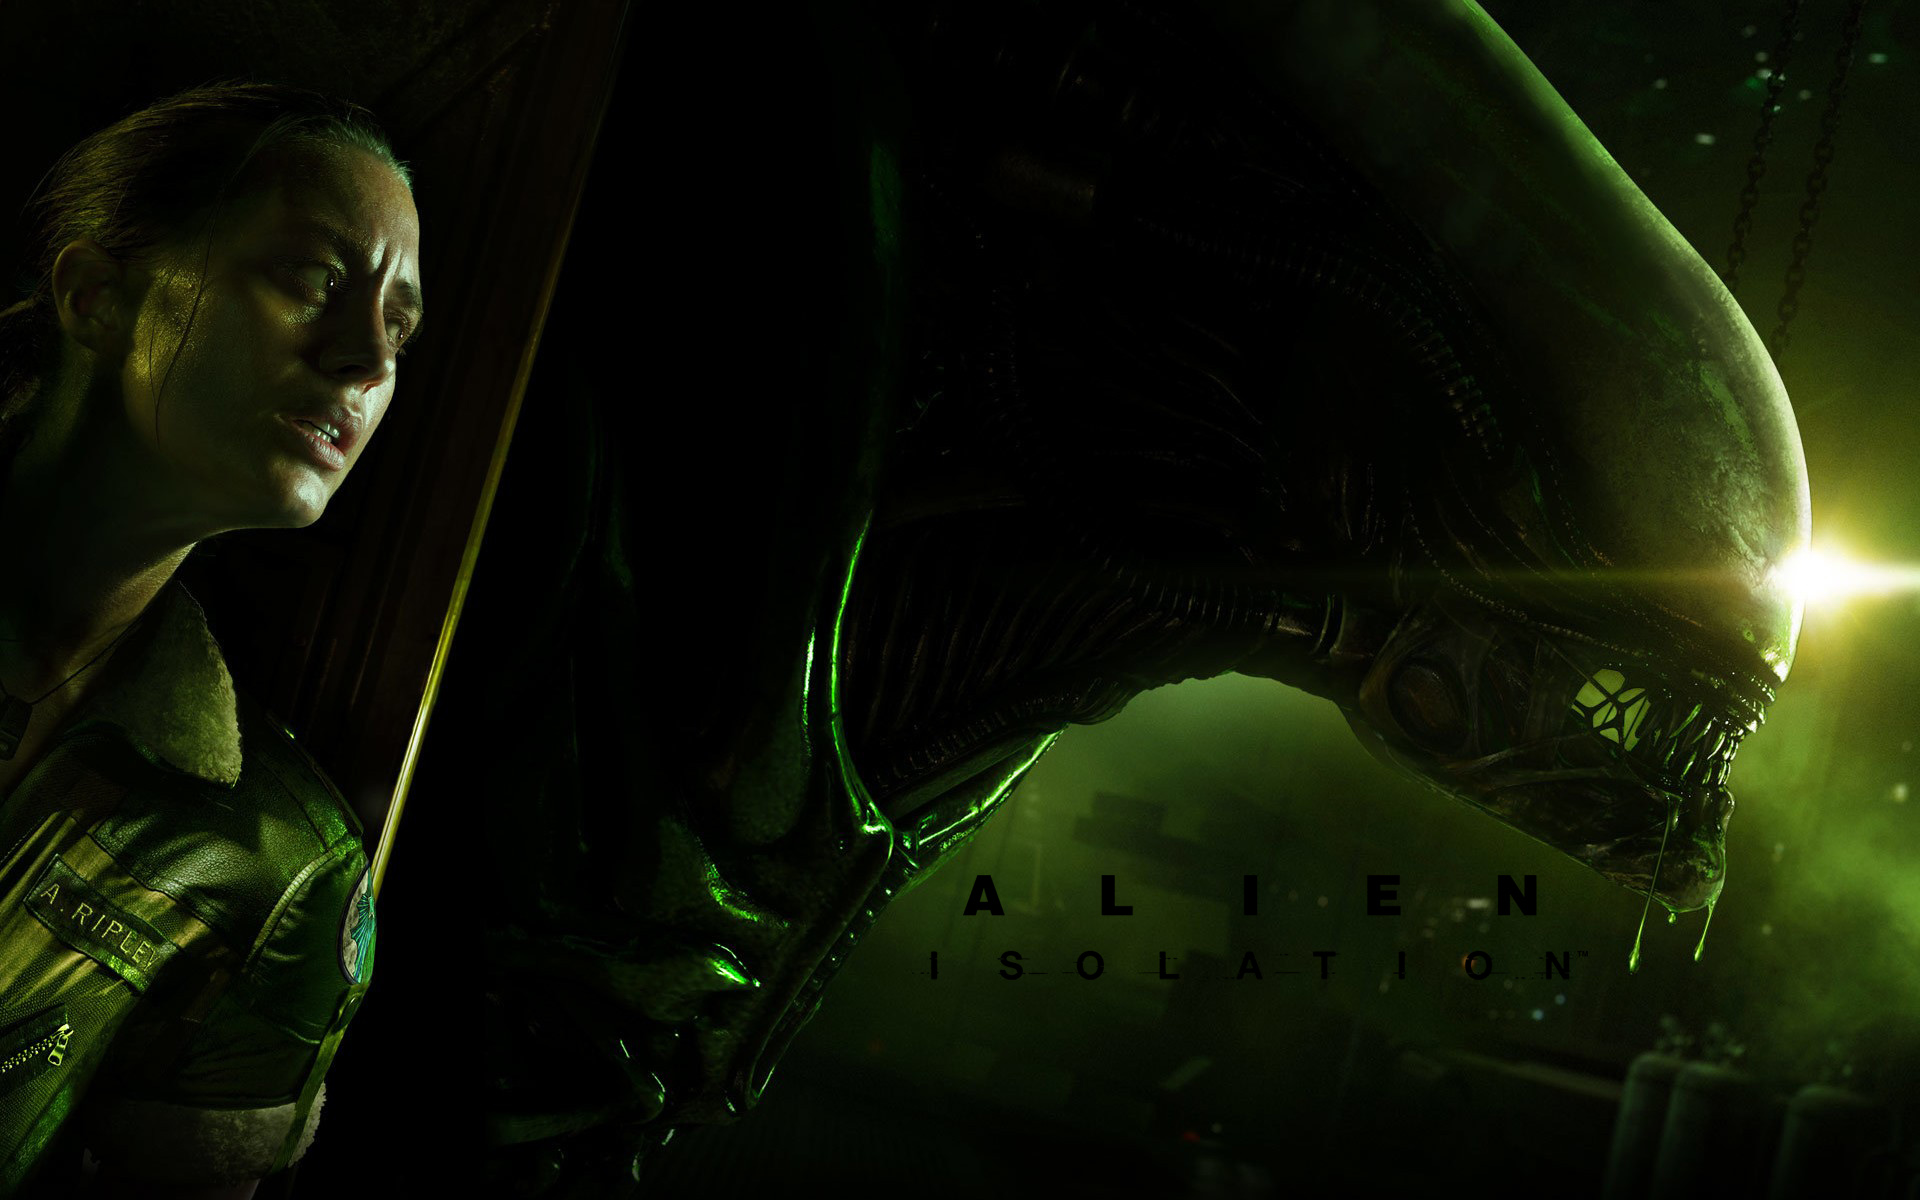 HD Wallpapers Alien Isolation Game